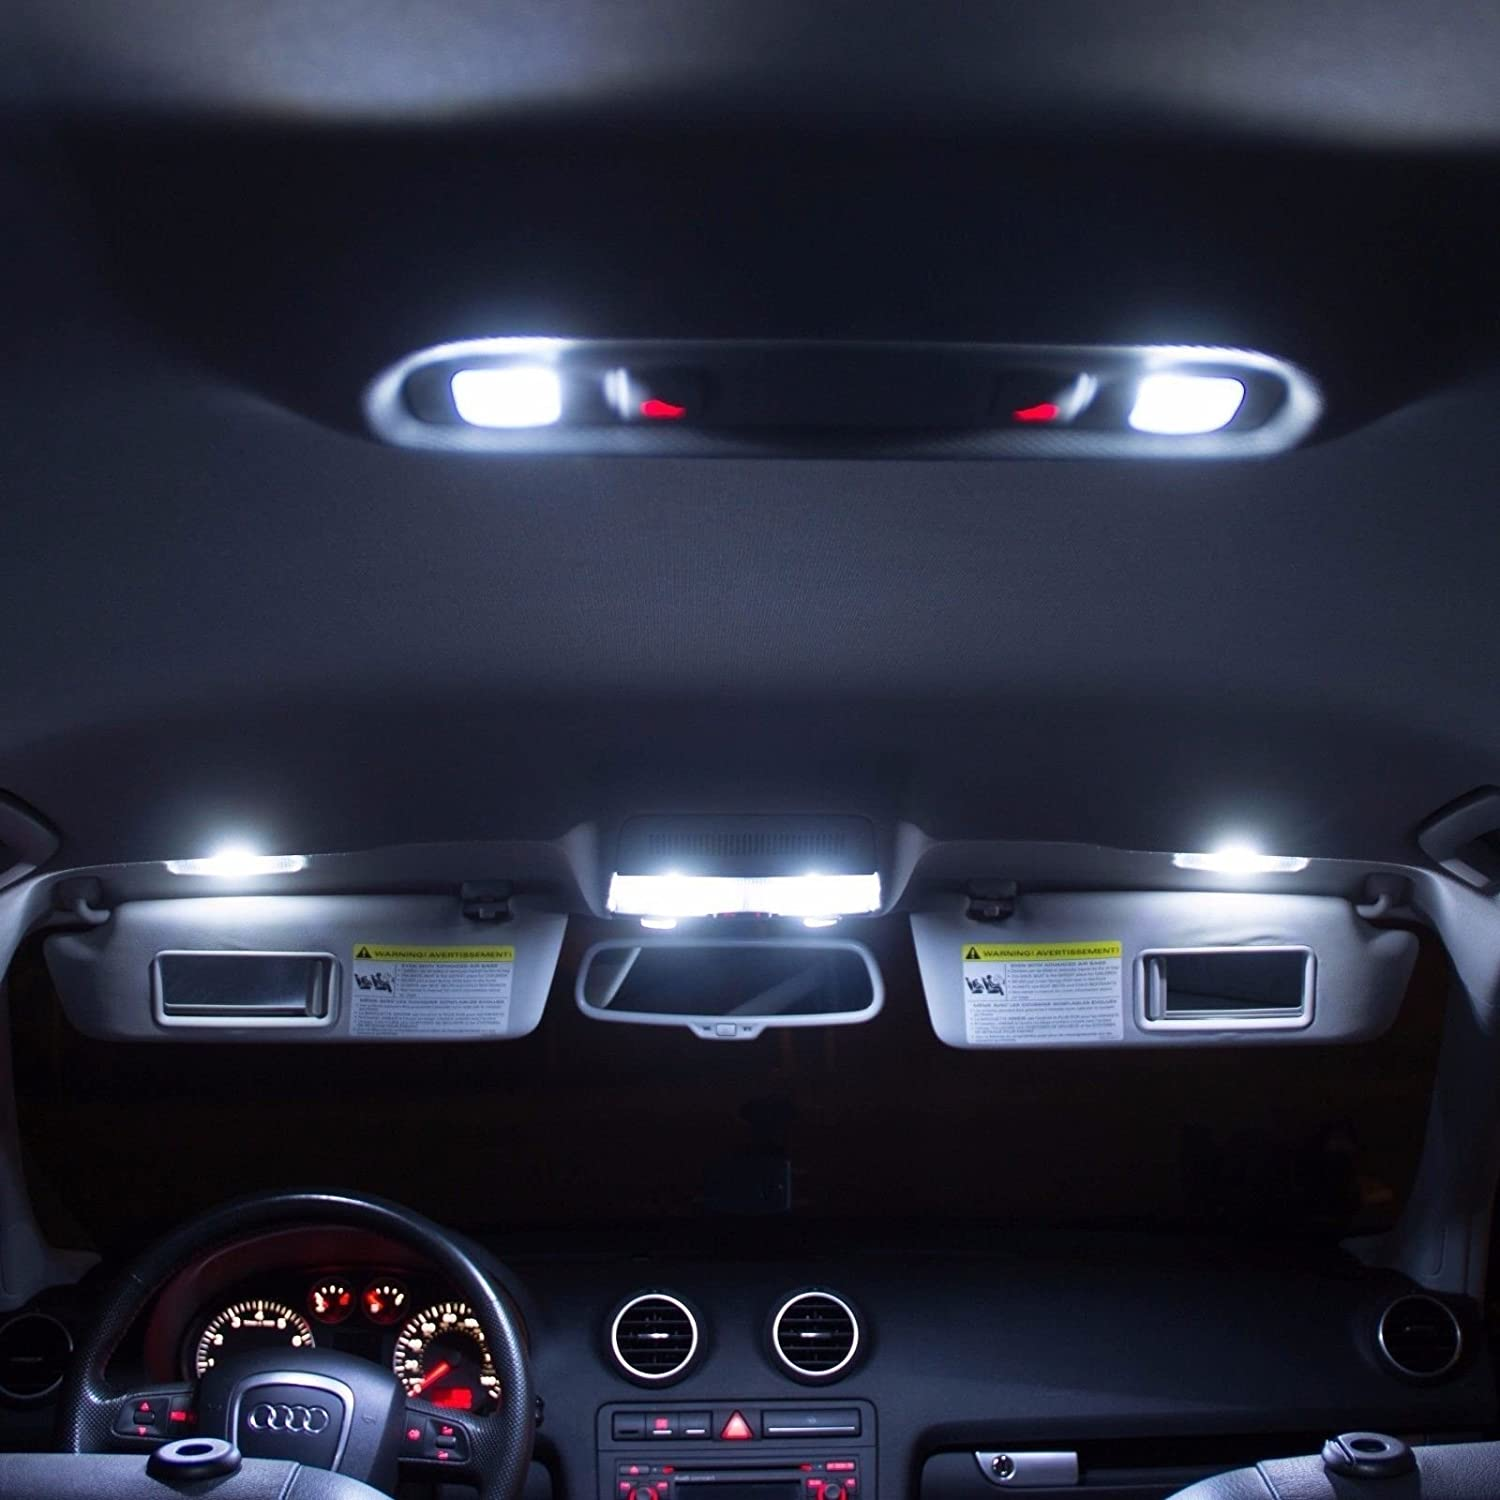 Led White Lights Interior Package Kit For Ford Excursion My Power Windows And Dome On 2000 Explorer Worked 2005 14 Bulbs Automotive